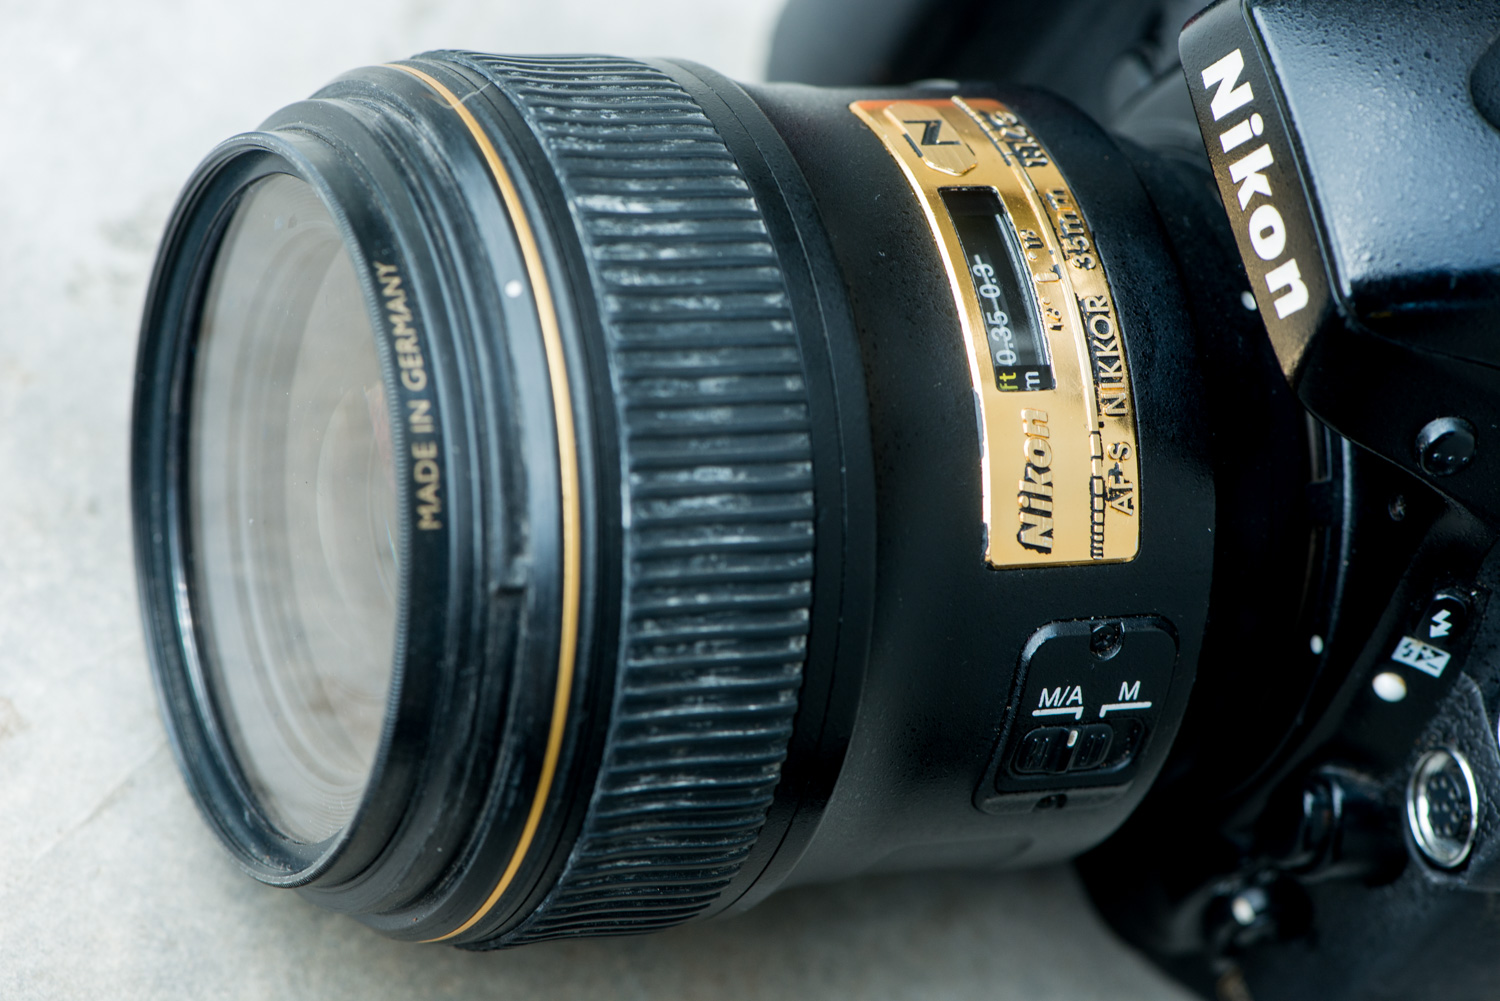 35mm f1.4 Lens well loved - dPS Writer's Favorite Lens: Why I Love My 35mm F1.4